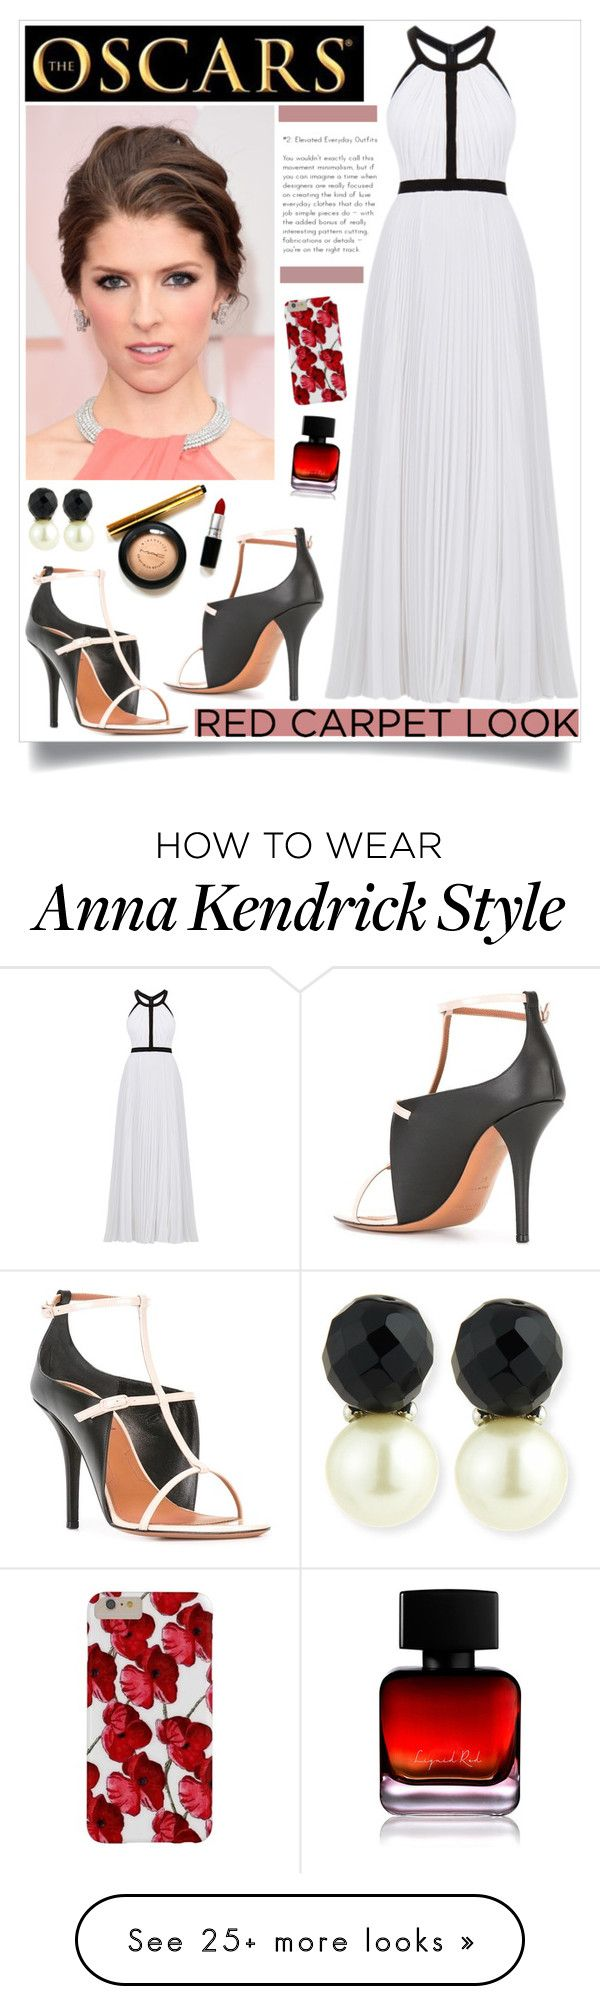 """""""Anna Kendrick."""" by iamrendrawati on Polyvore featuring Nicole Miller, Givenchy, Kenneth Jay Lane and The Collection by Phuong Dang"""